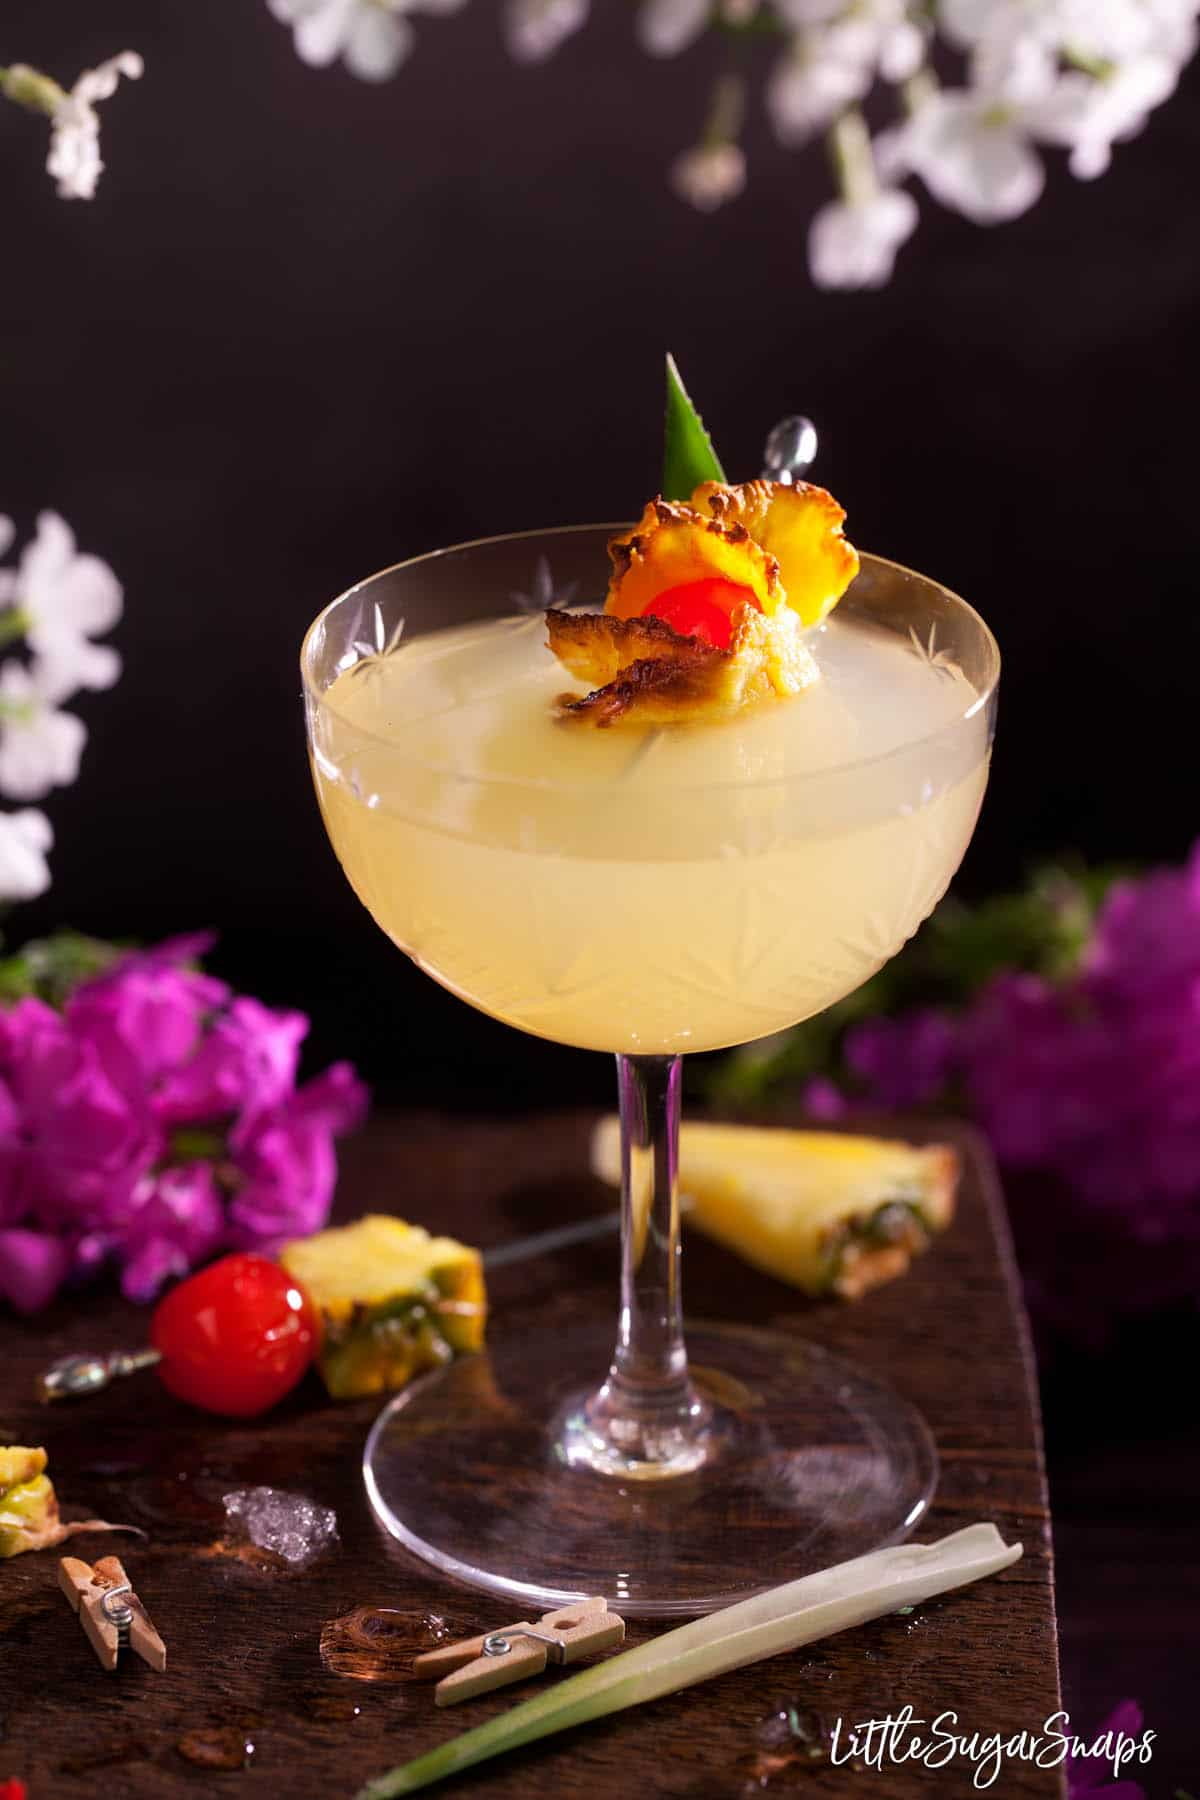 A Royal Hawaiian cocktail garnished with oven-dried pineapple and a maraschino cherry